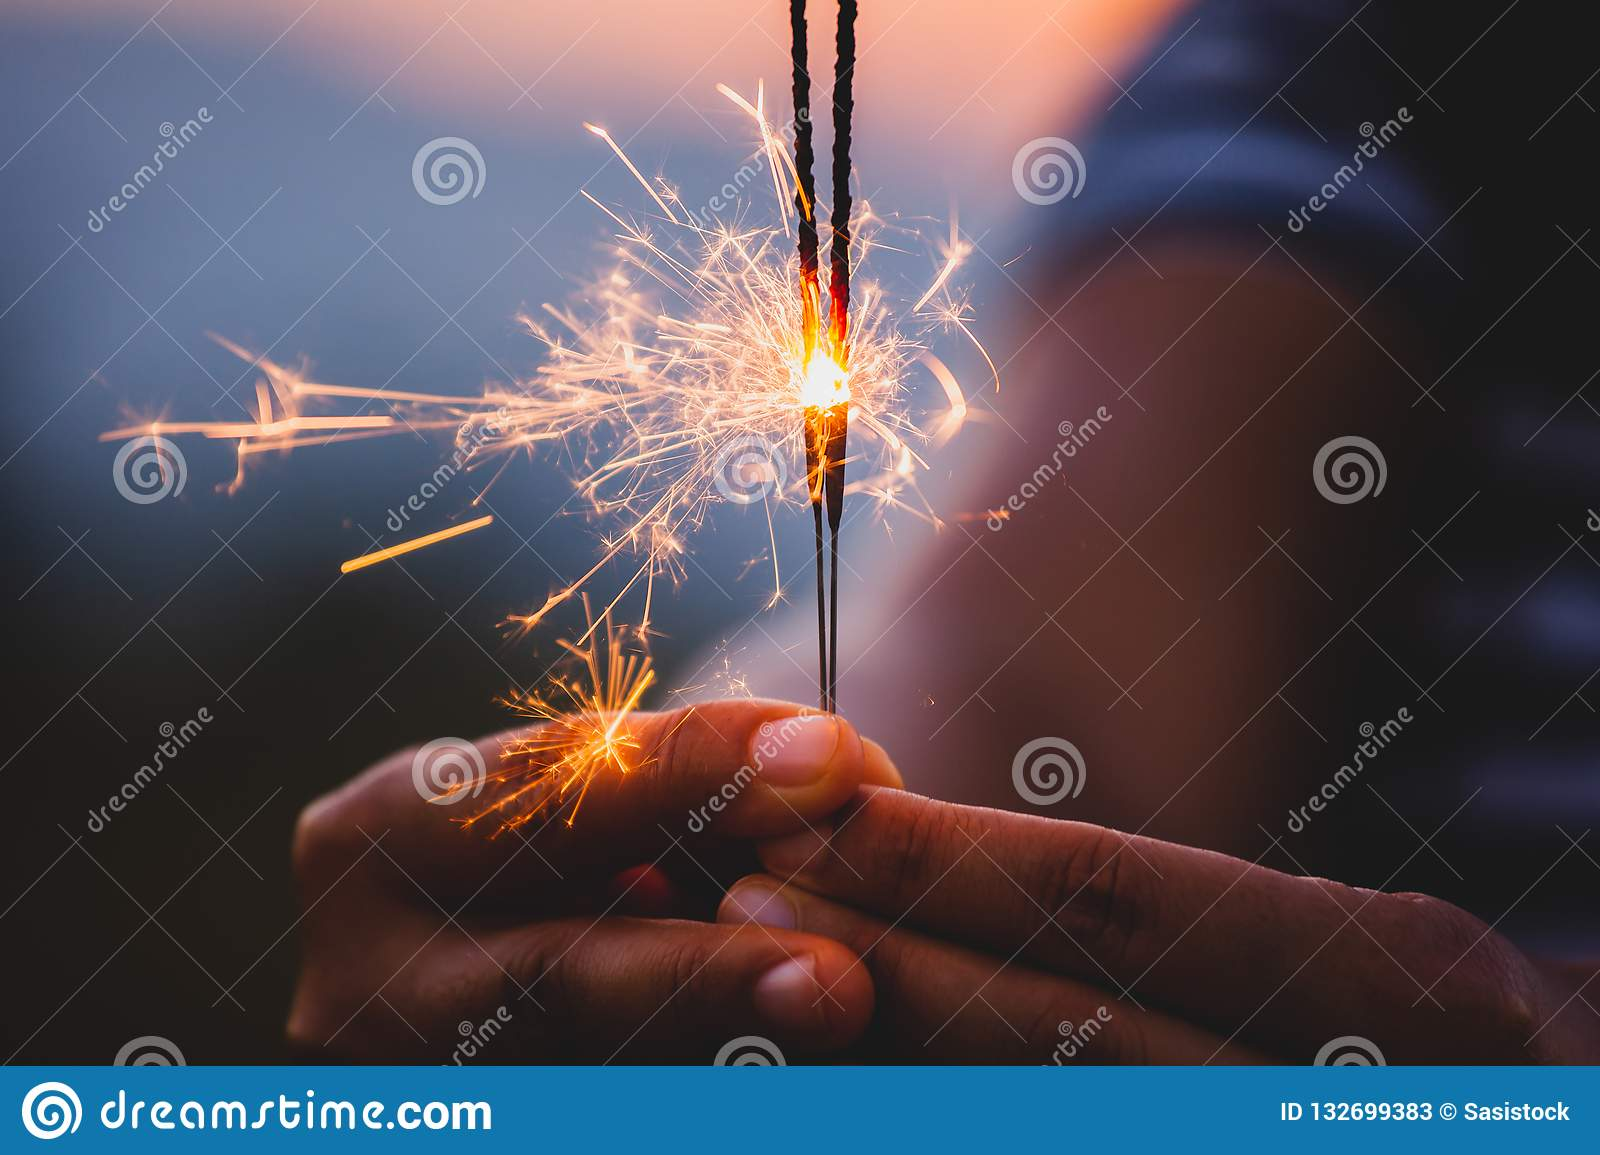 Woman Holding And Playing With Fire Sparklers On The